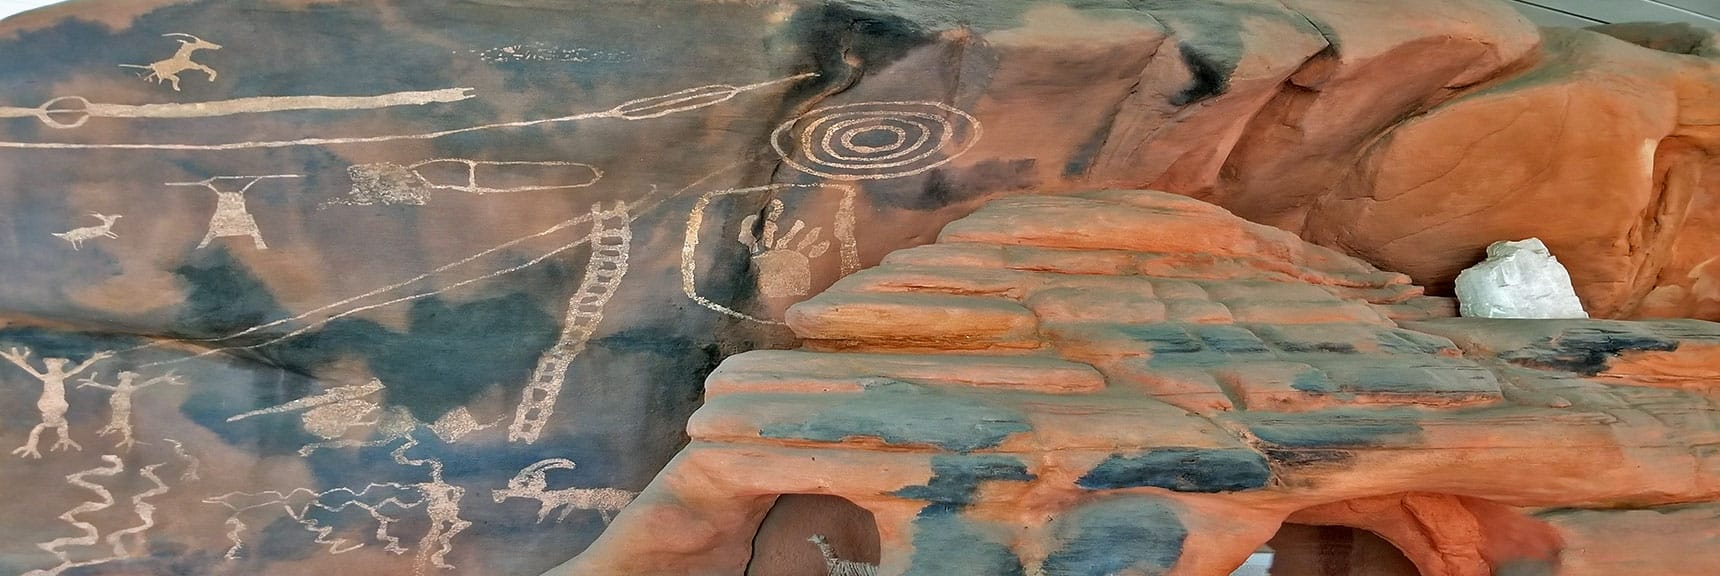 Petroglyphs in Valley of Fire State Park, Nevada